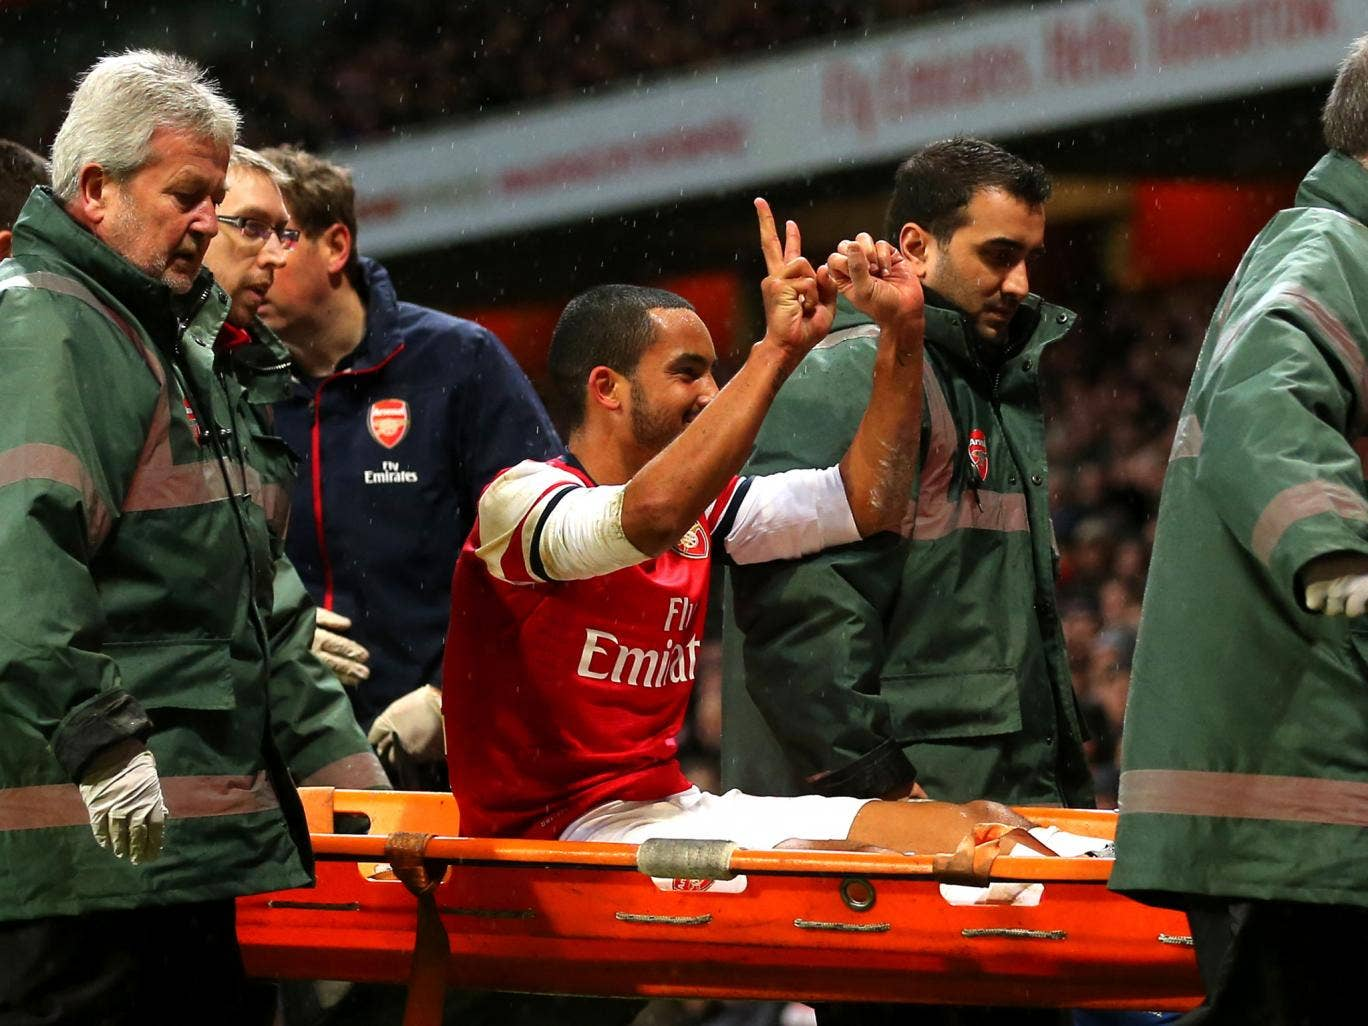 Two of the four ambulance workers that helped Theo Walcott were Tottenham fans